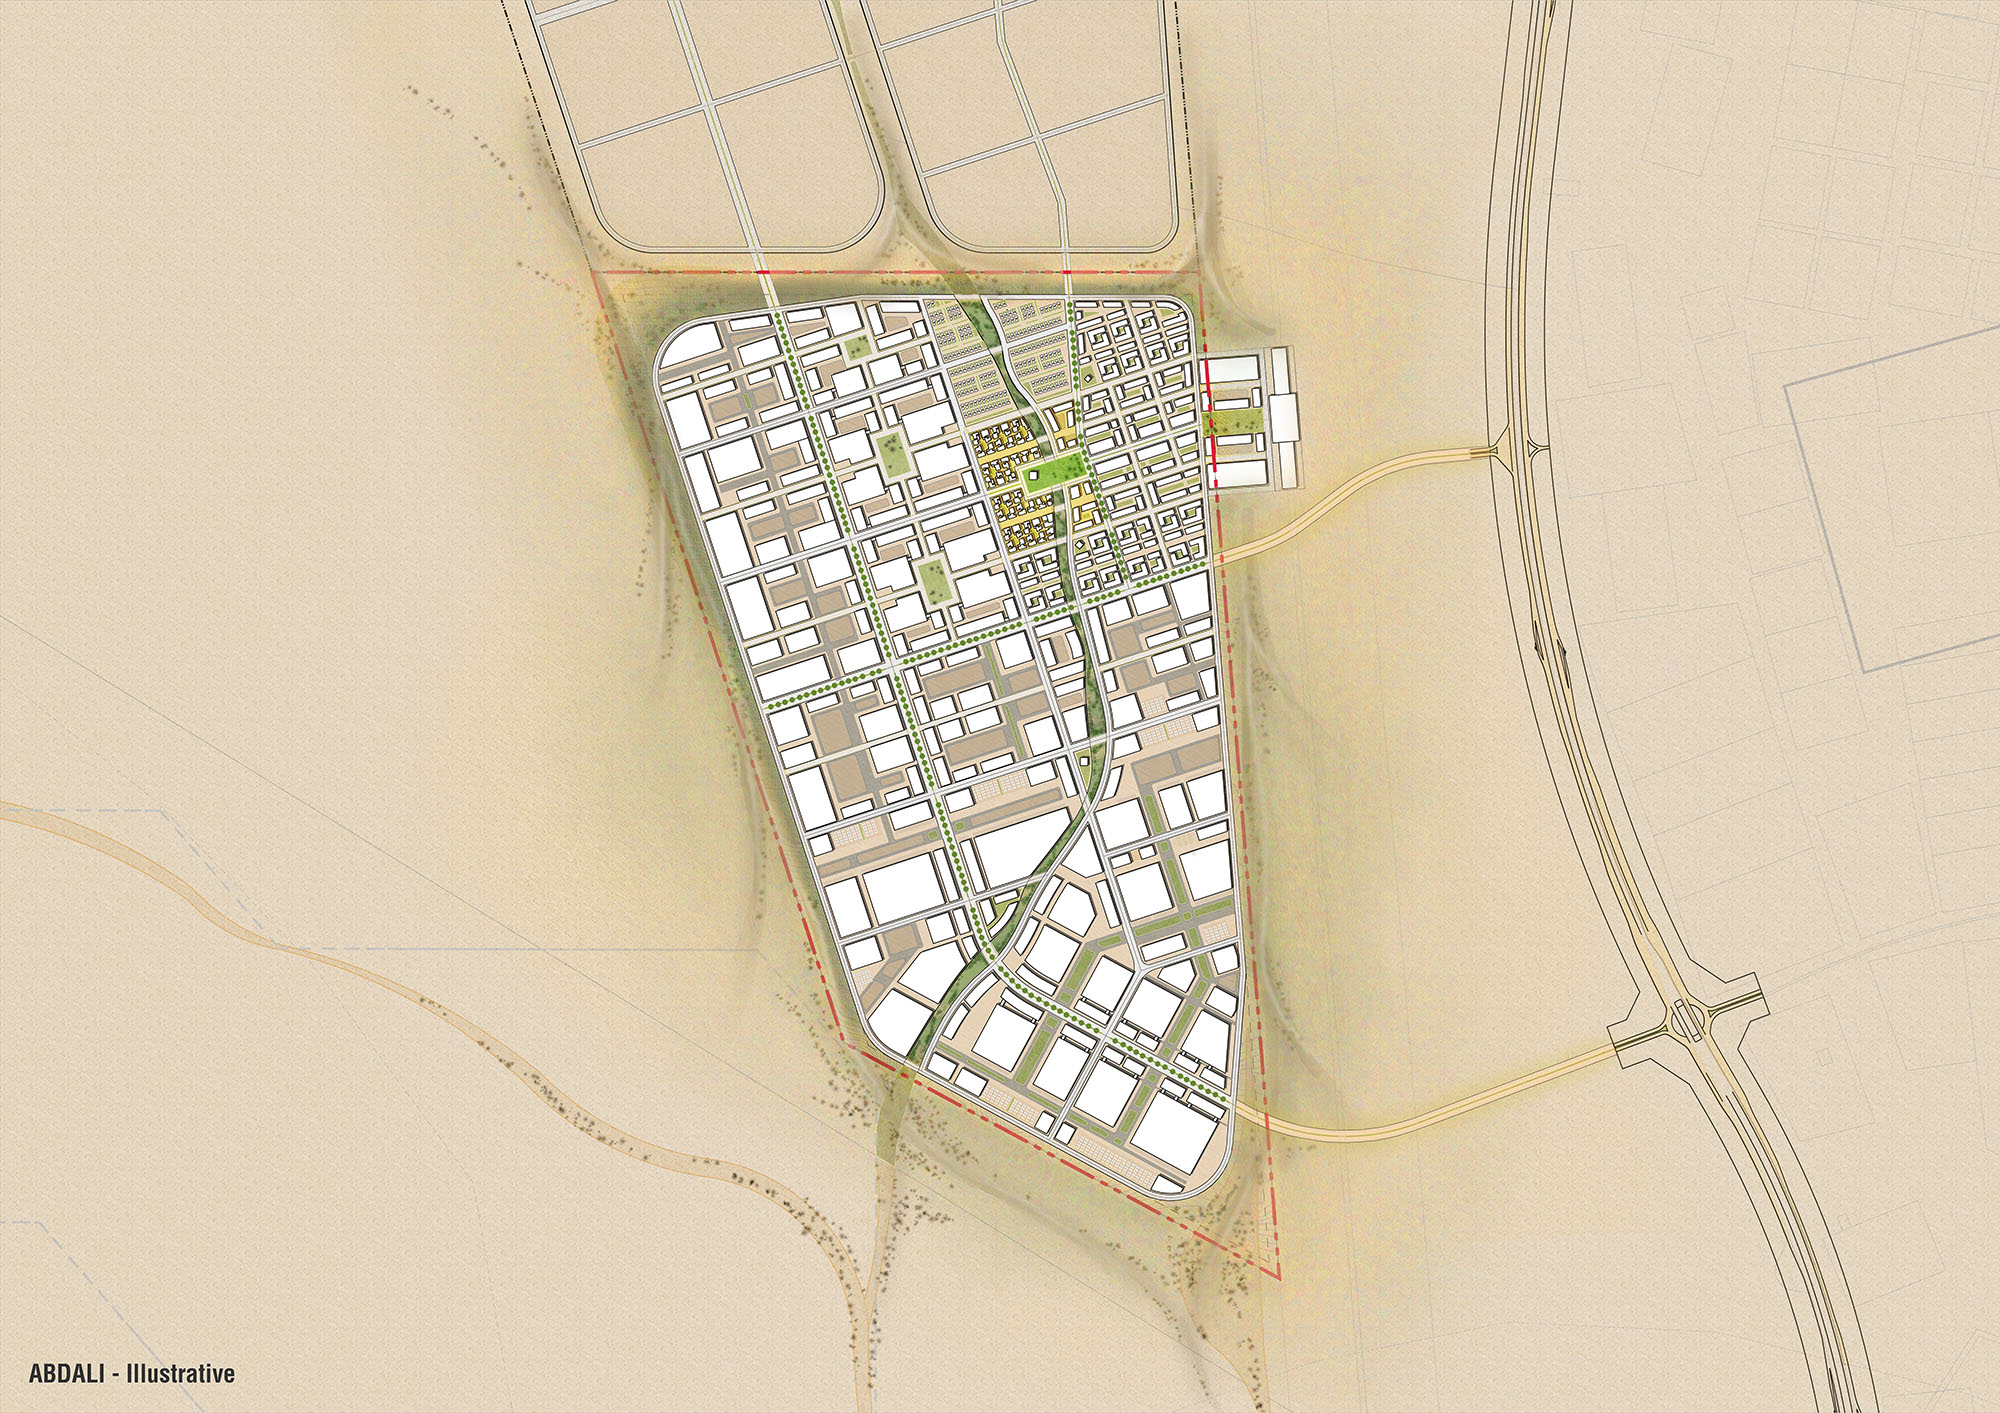 ABDALI - Kuwait Economic Zones